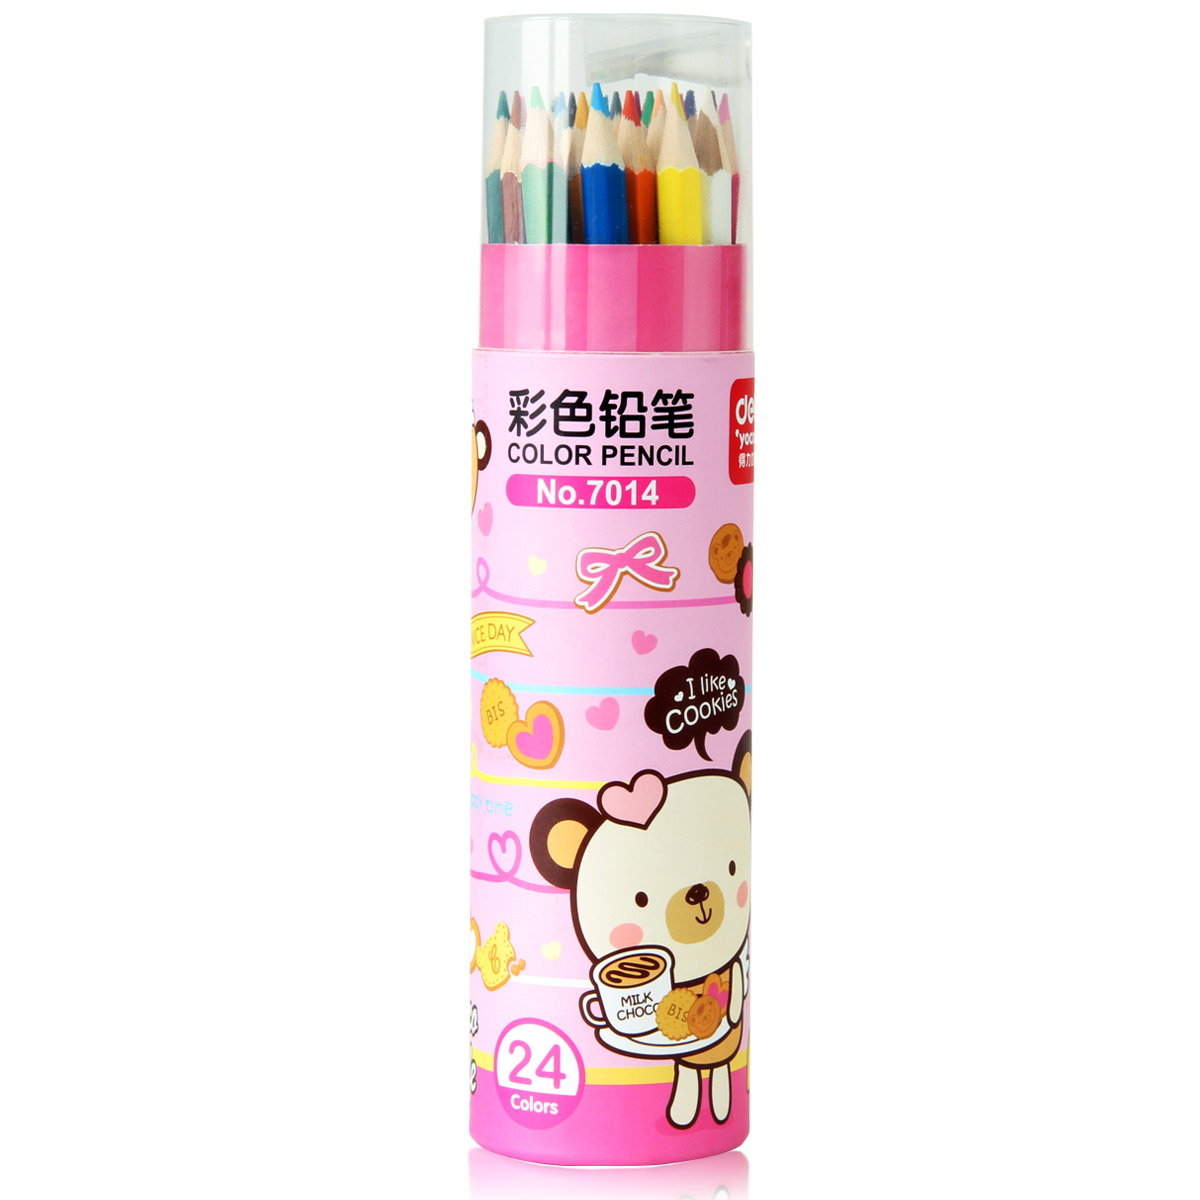 Www.youku.com series deli deli deli 7014 color of lead 24 color color pencil student stationery art supplies